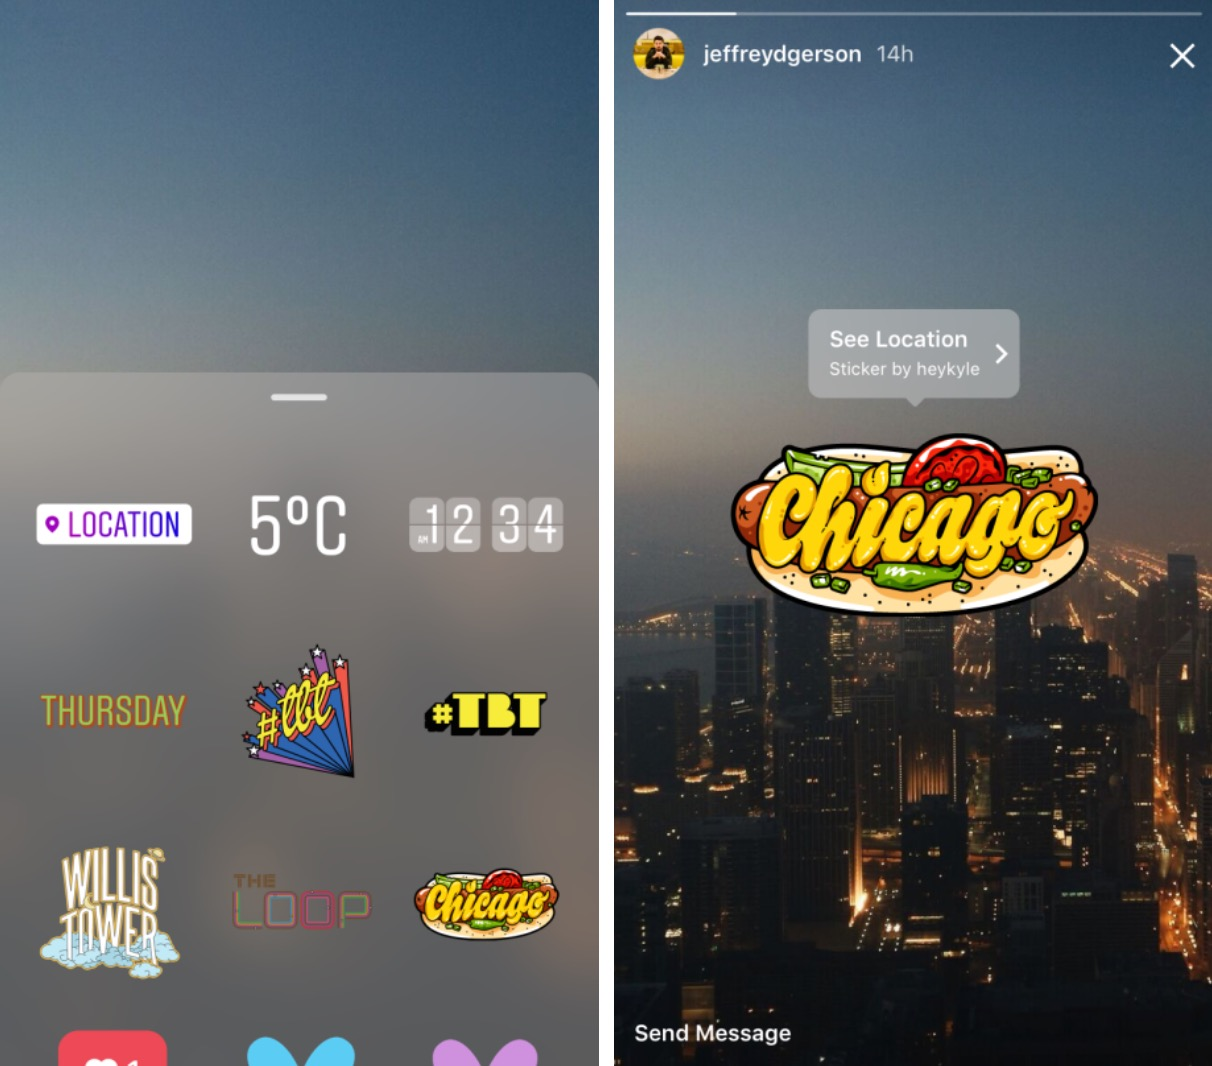 Instagram stories surpasses snapchat with 200 million daily active users instagram stories instagram stories ccuart Images